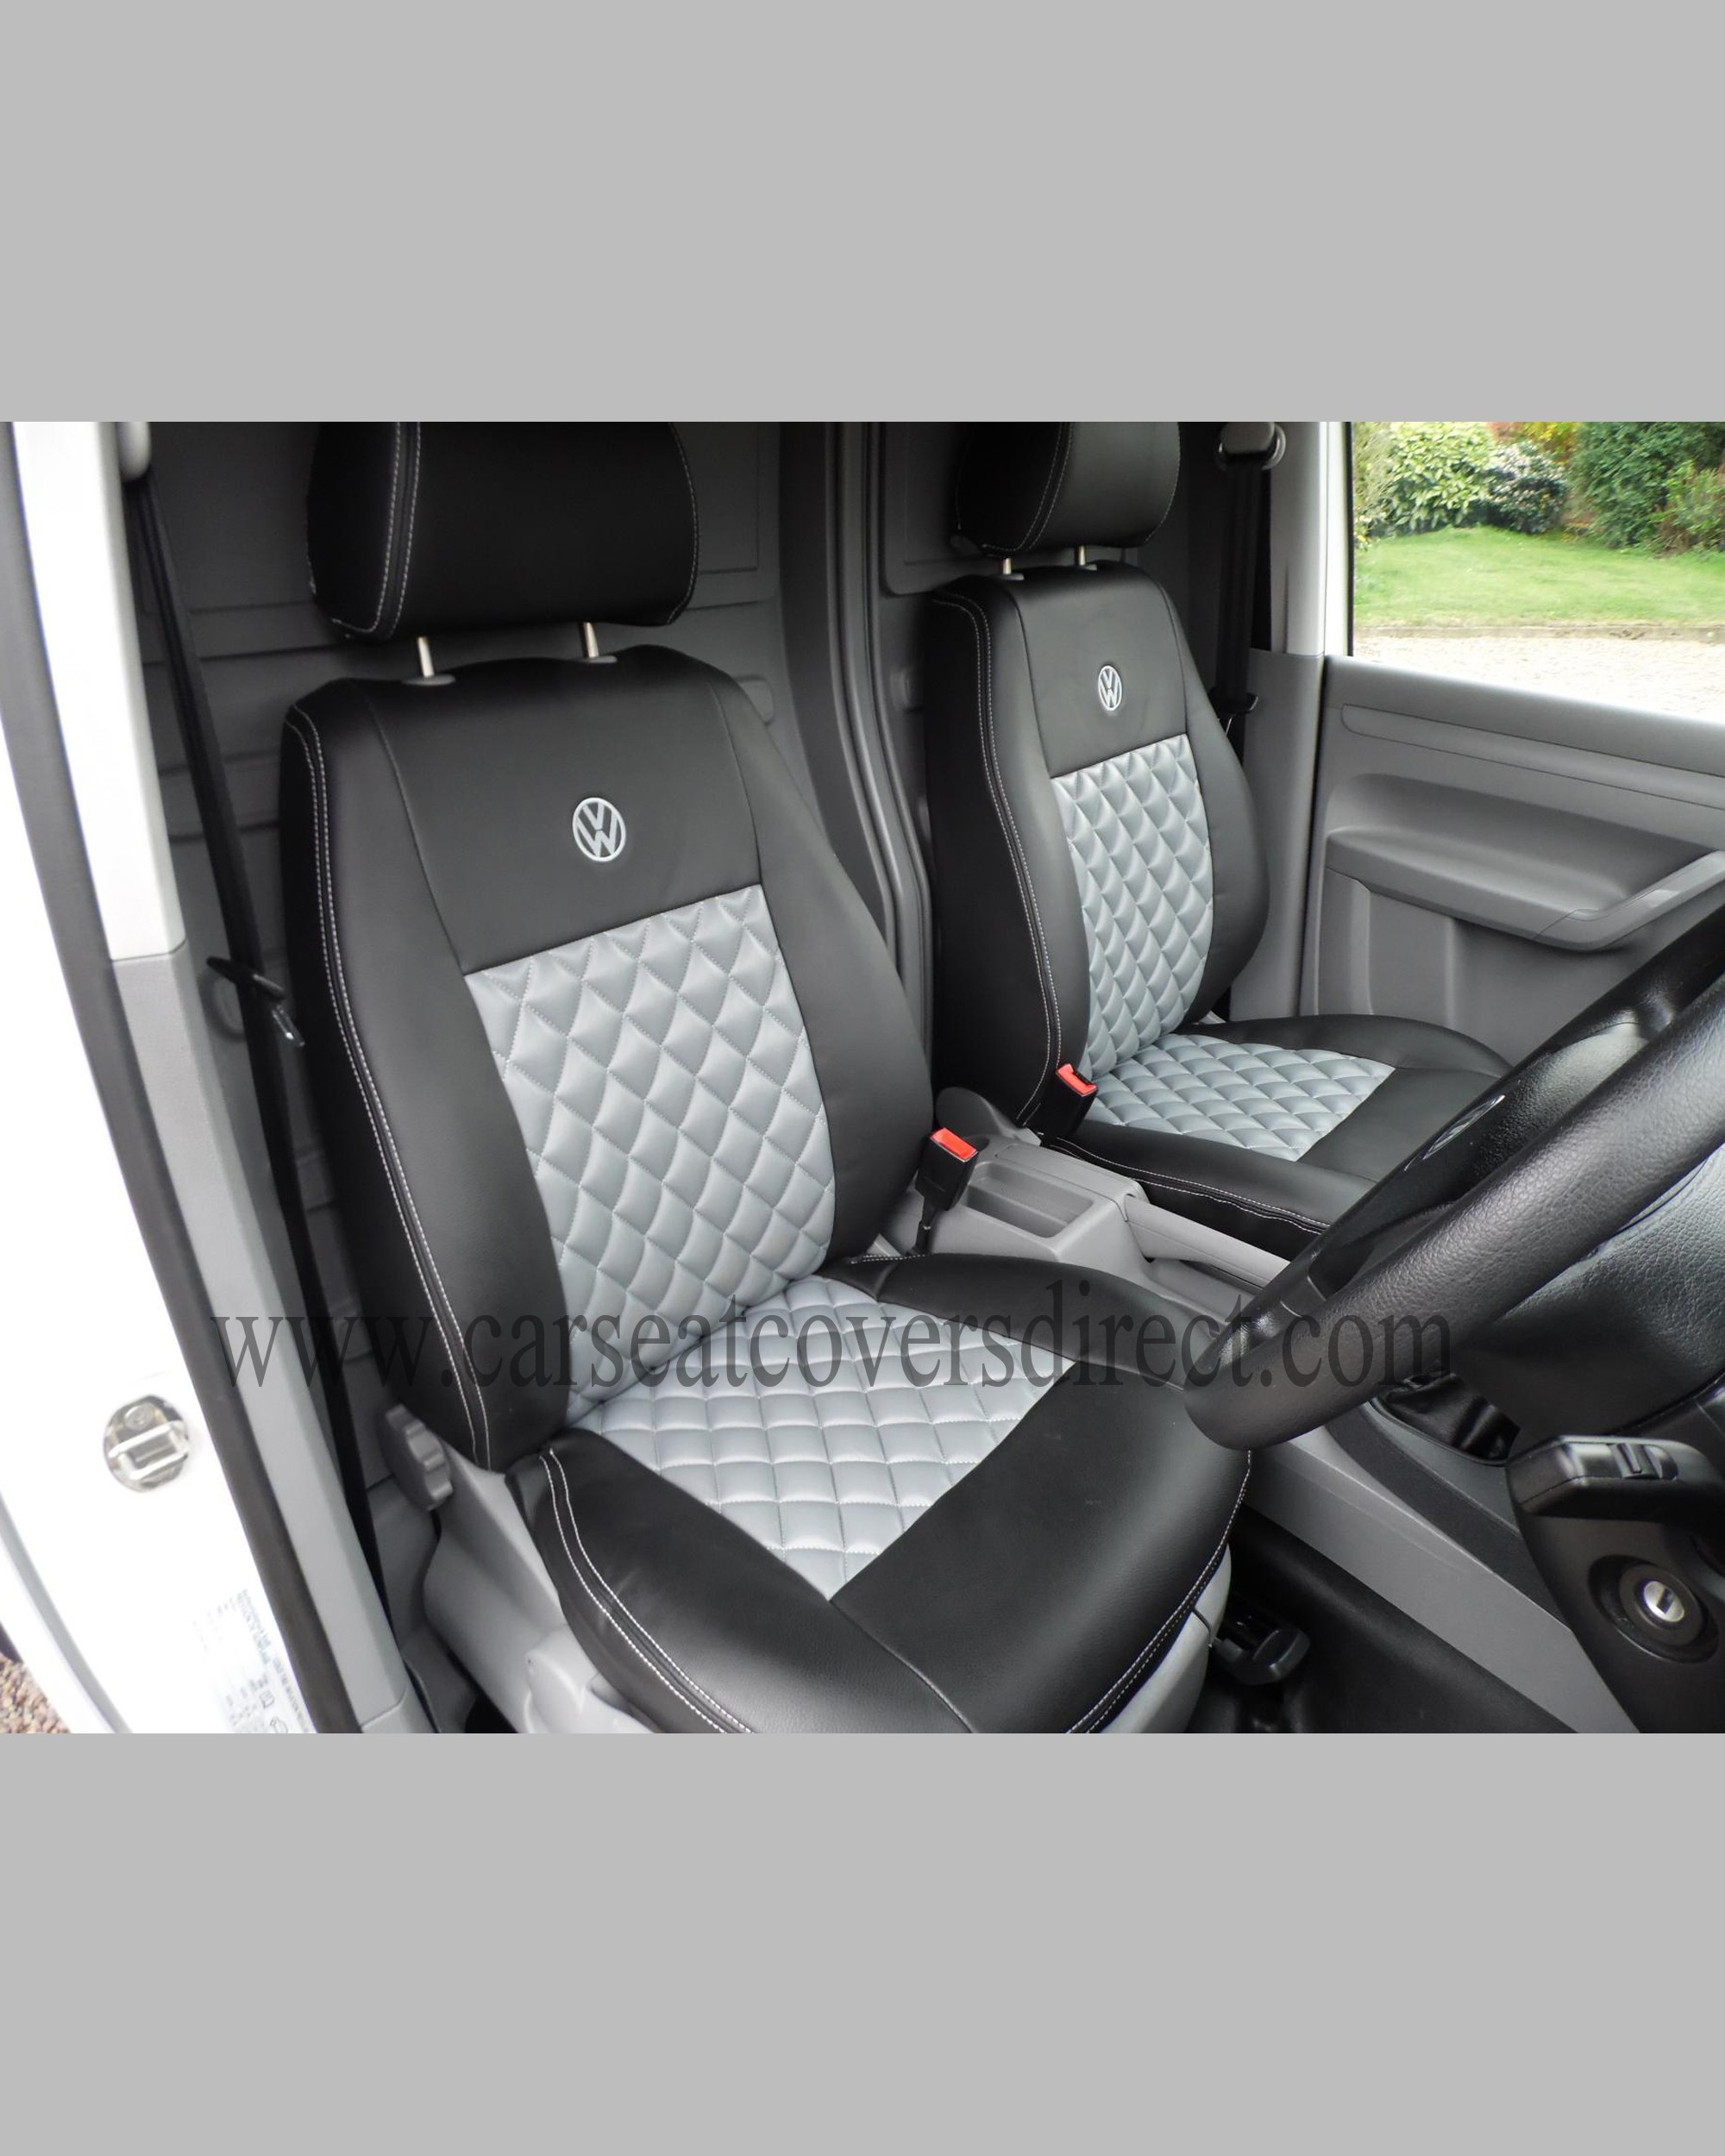 volkswagen vw caddy black grey seat covers car seat covers direct tailored to your choice. Black Bedroom Furniture Sets. Home Design Ideas